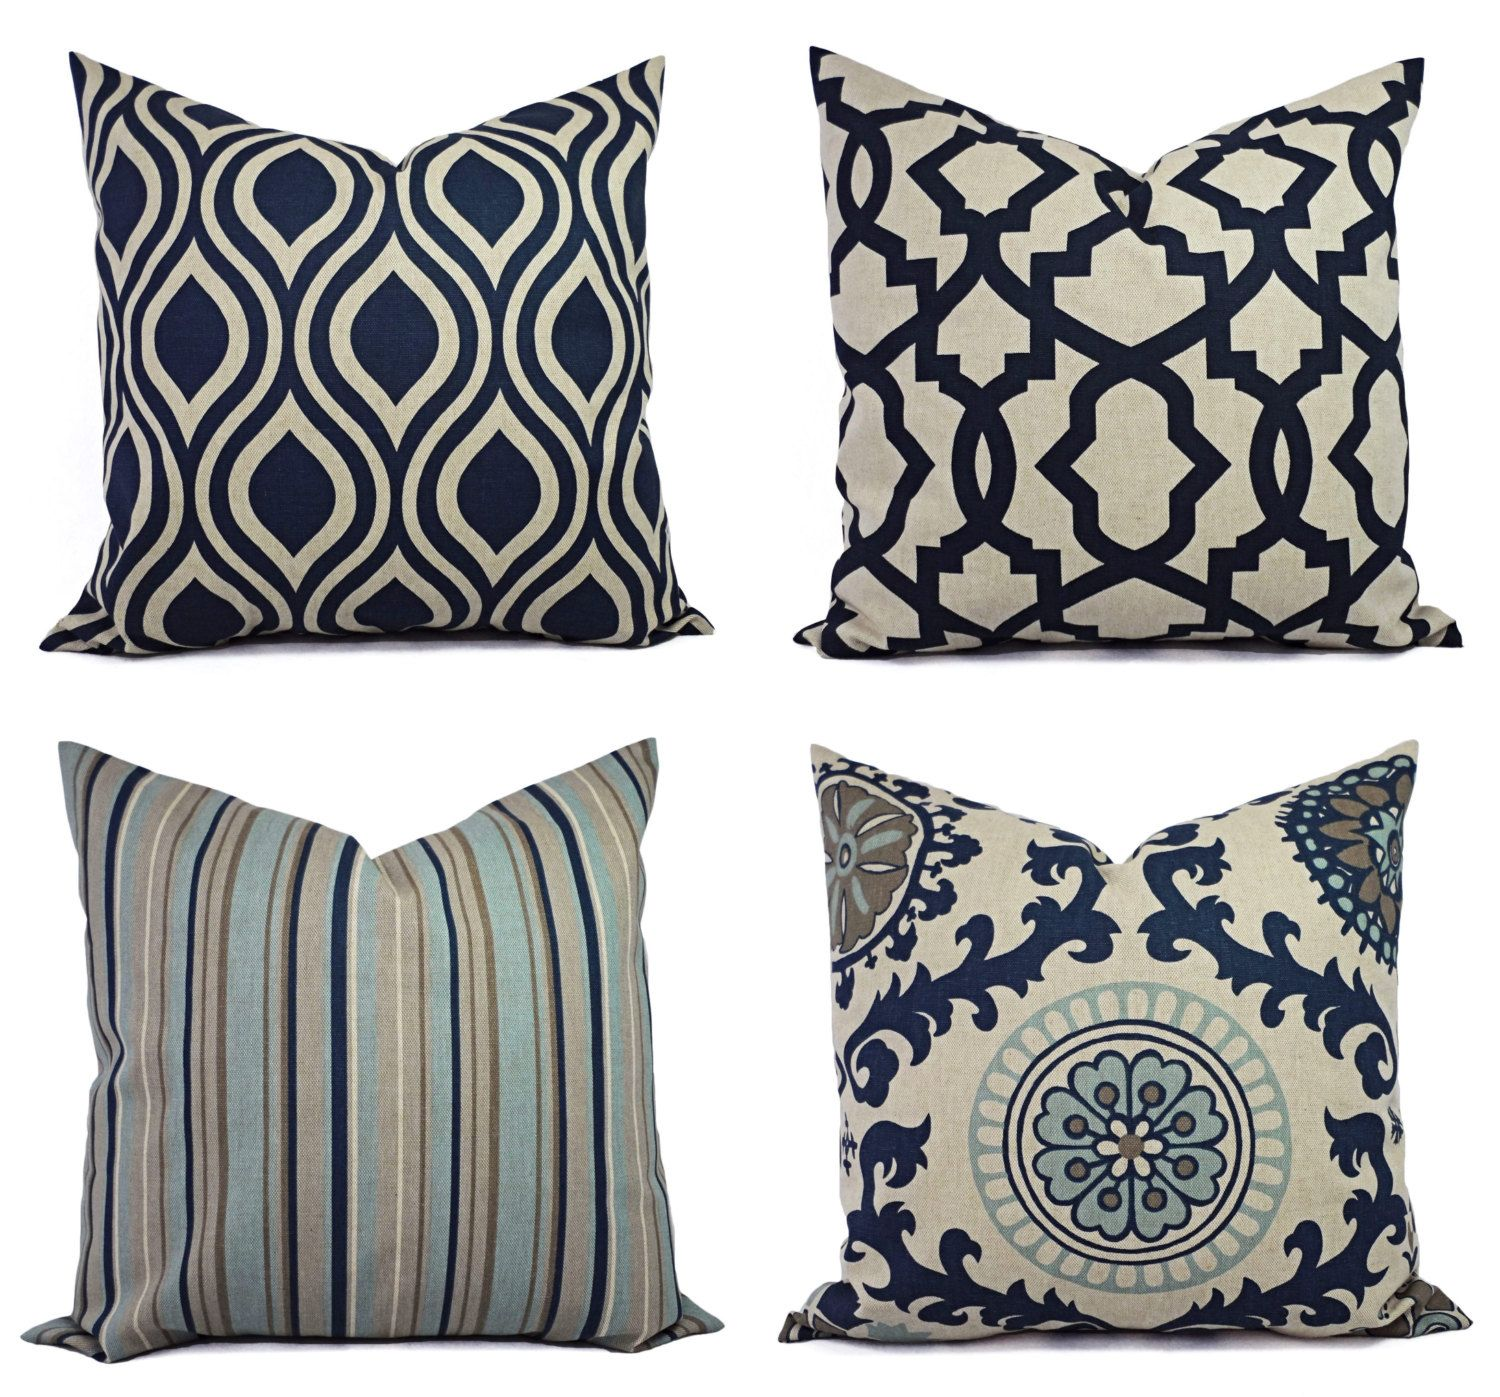 Decorative Pillow Blue and Beige